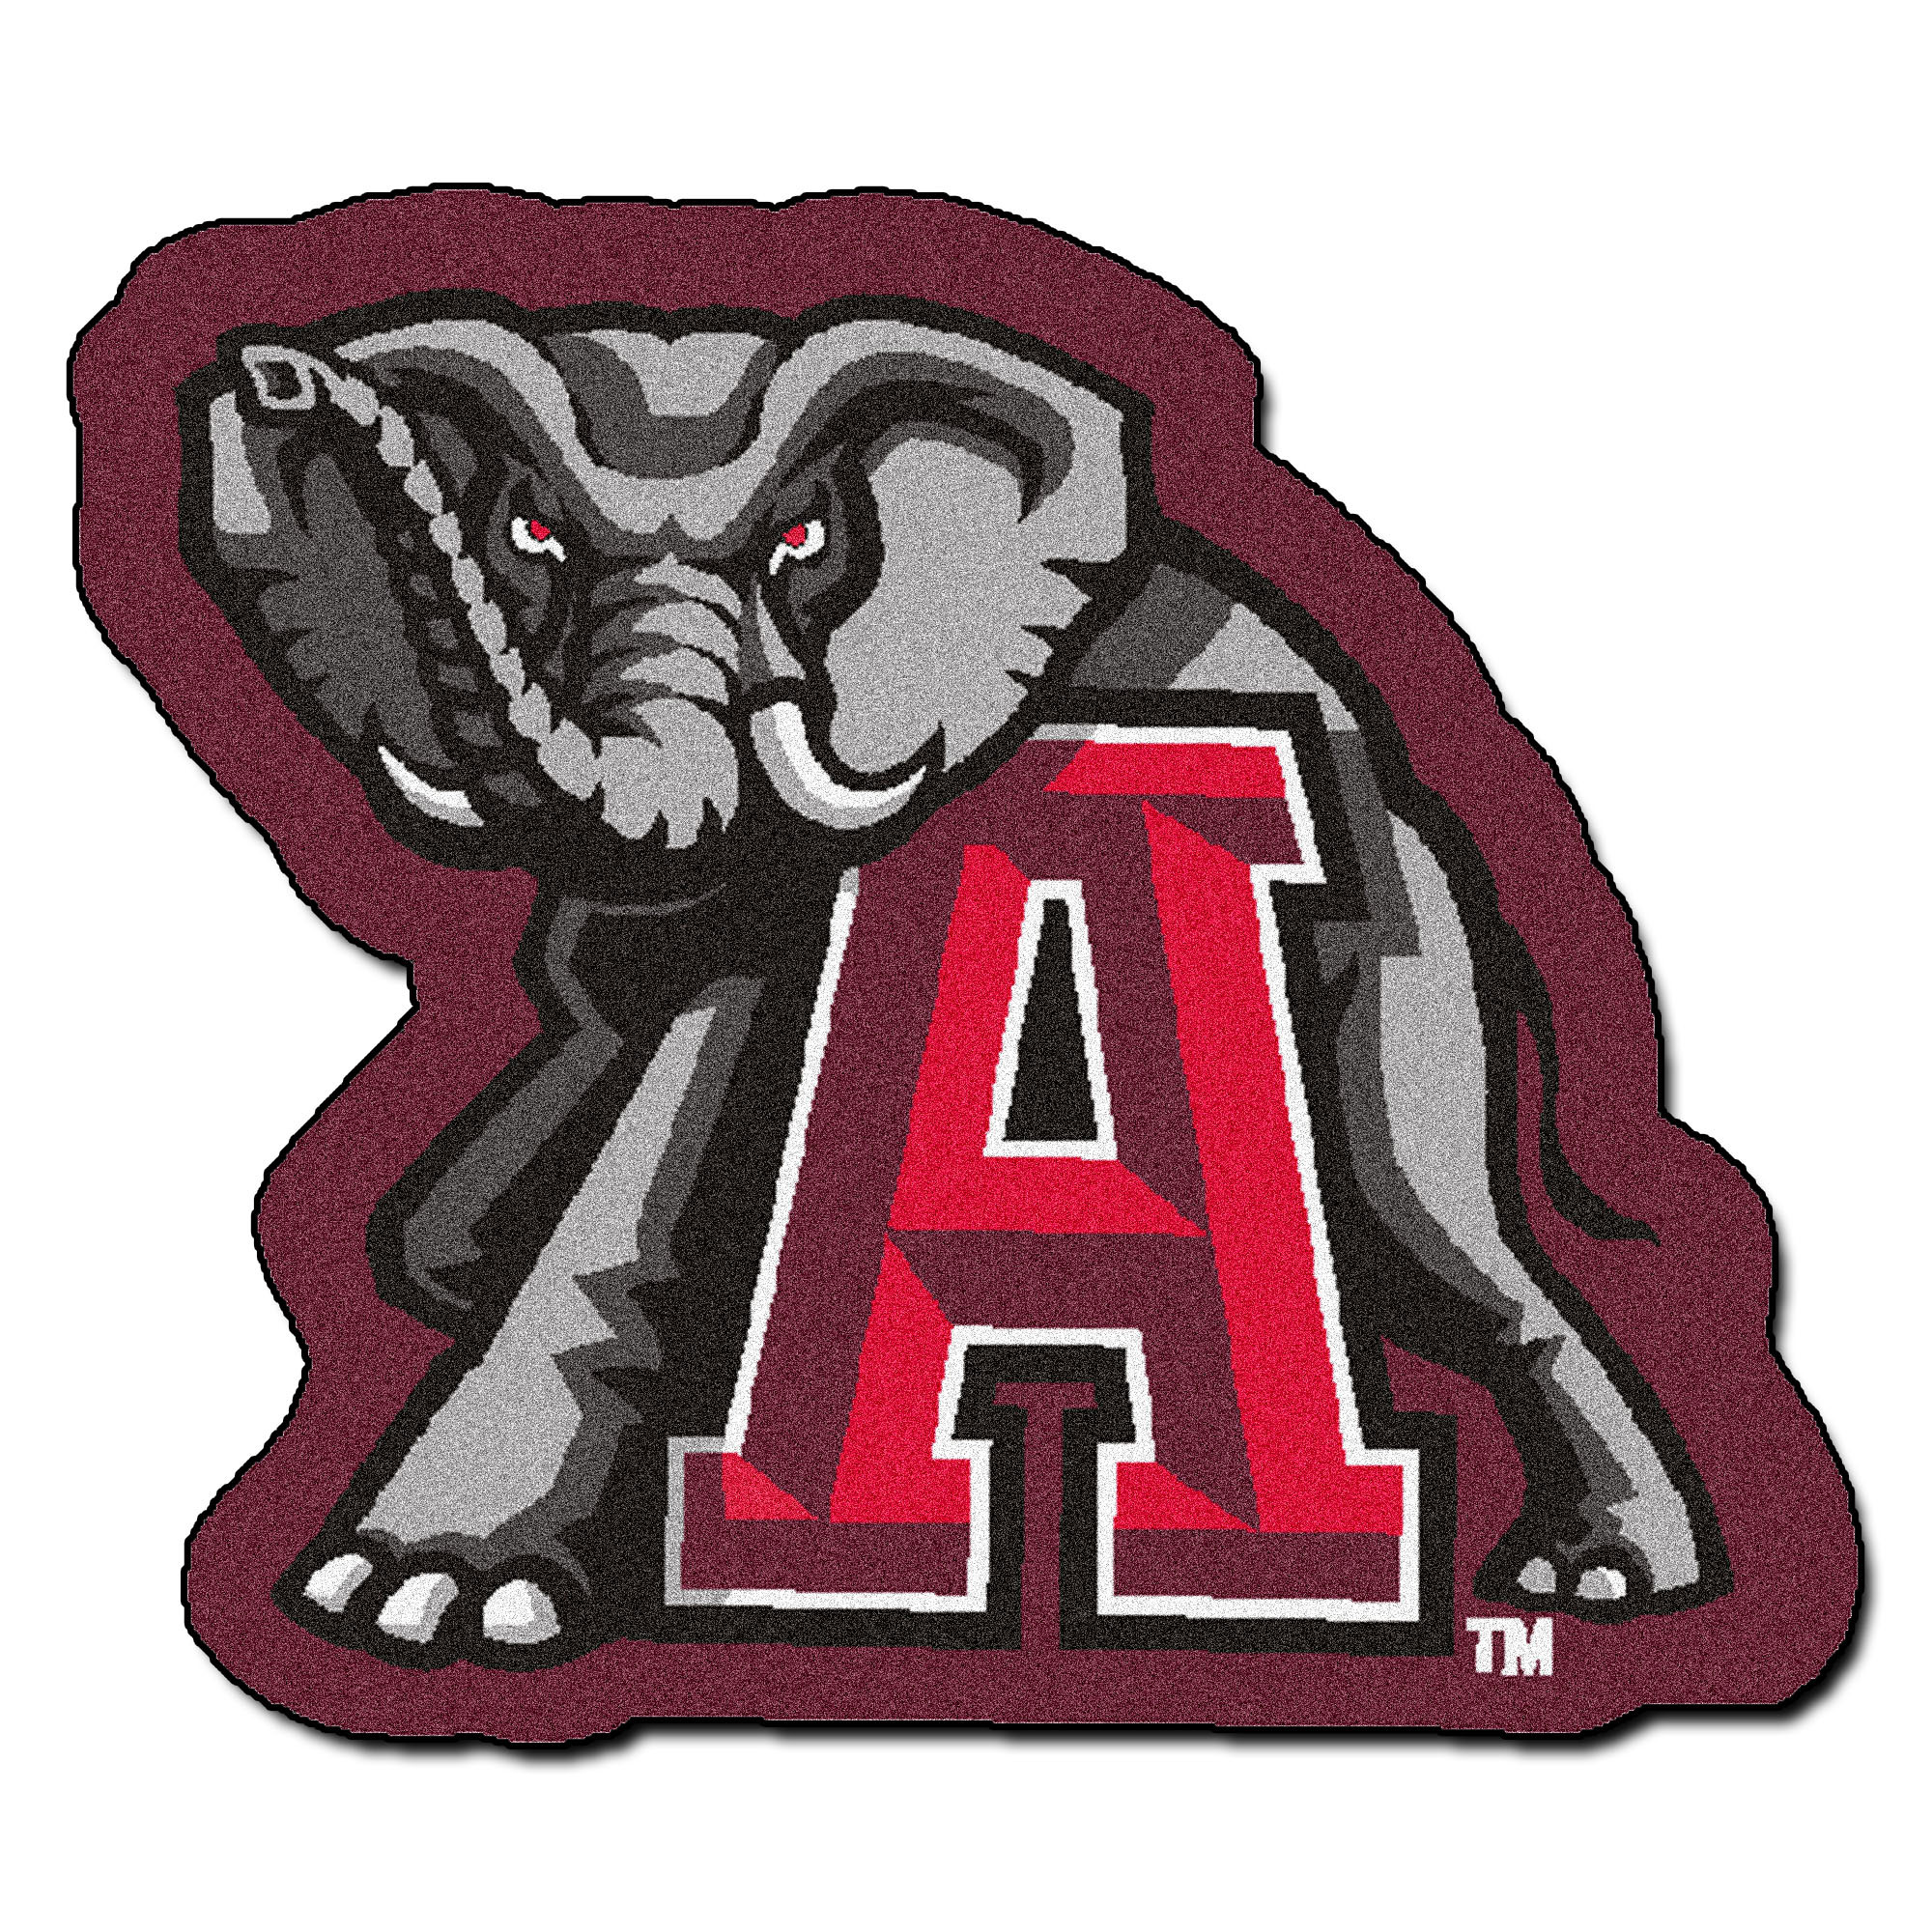 Details about University of Alabama Crimson Tide Mascot Area Rug.